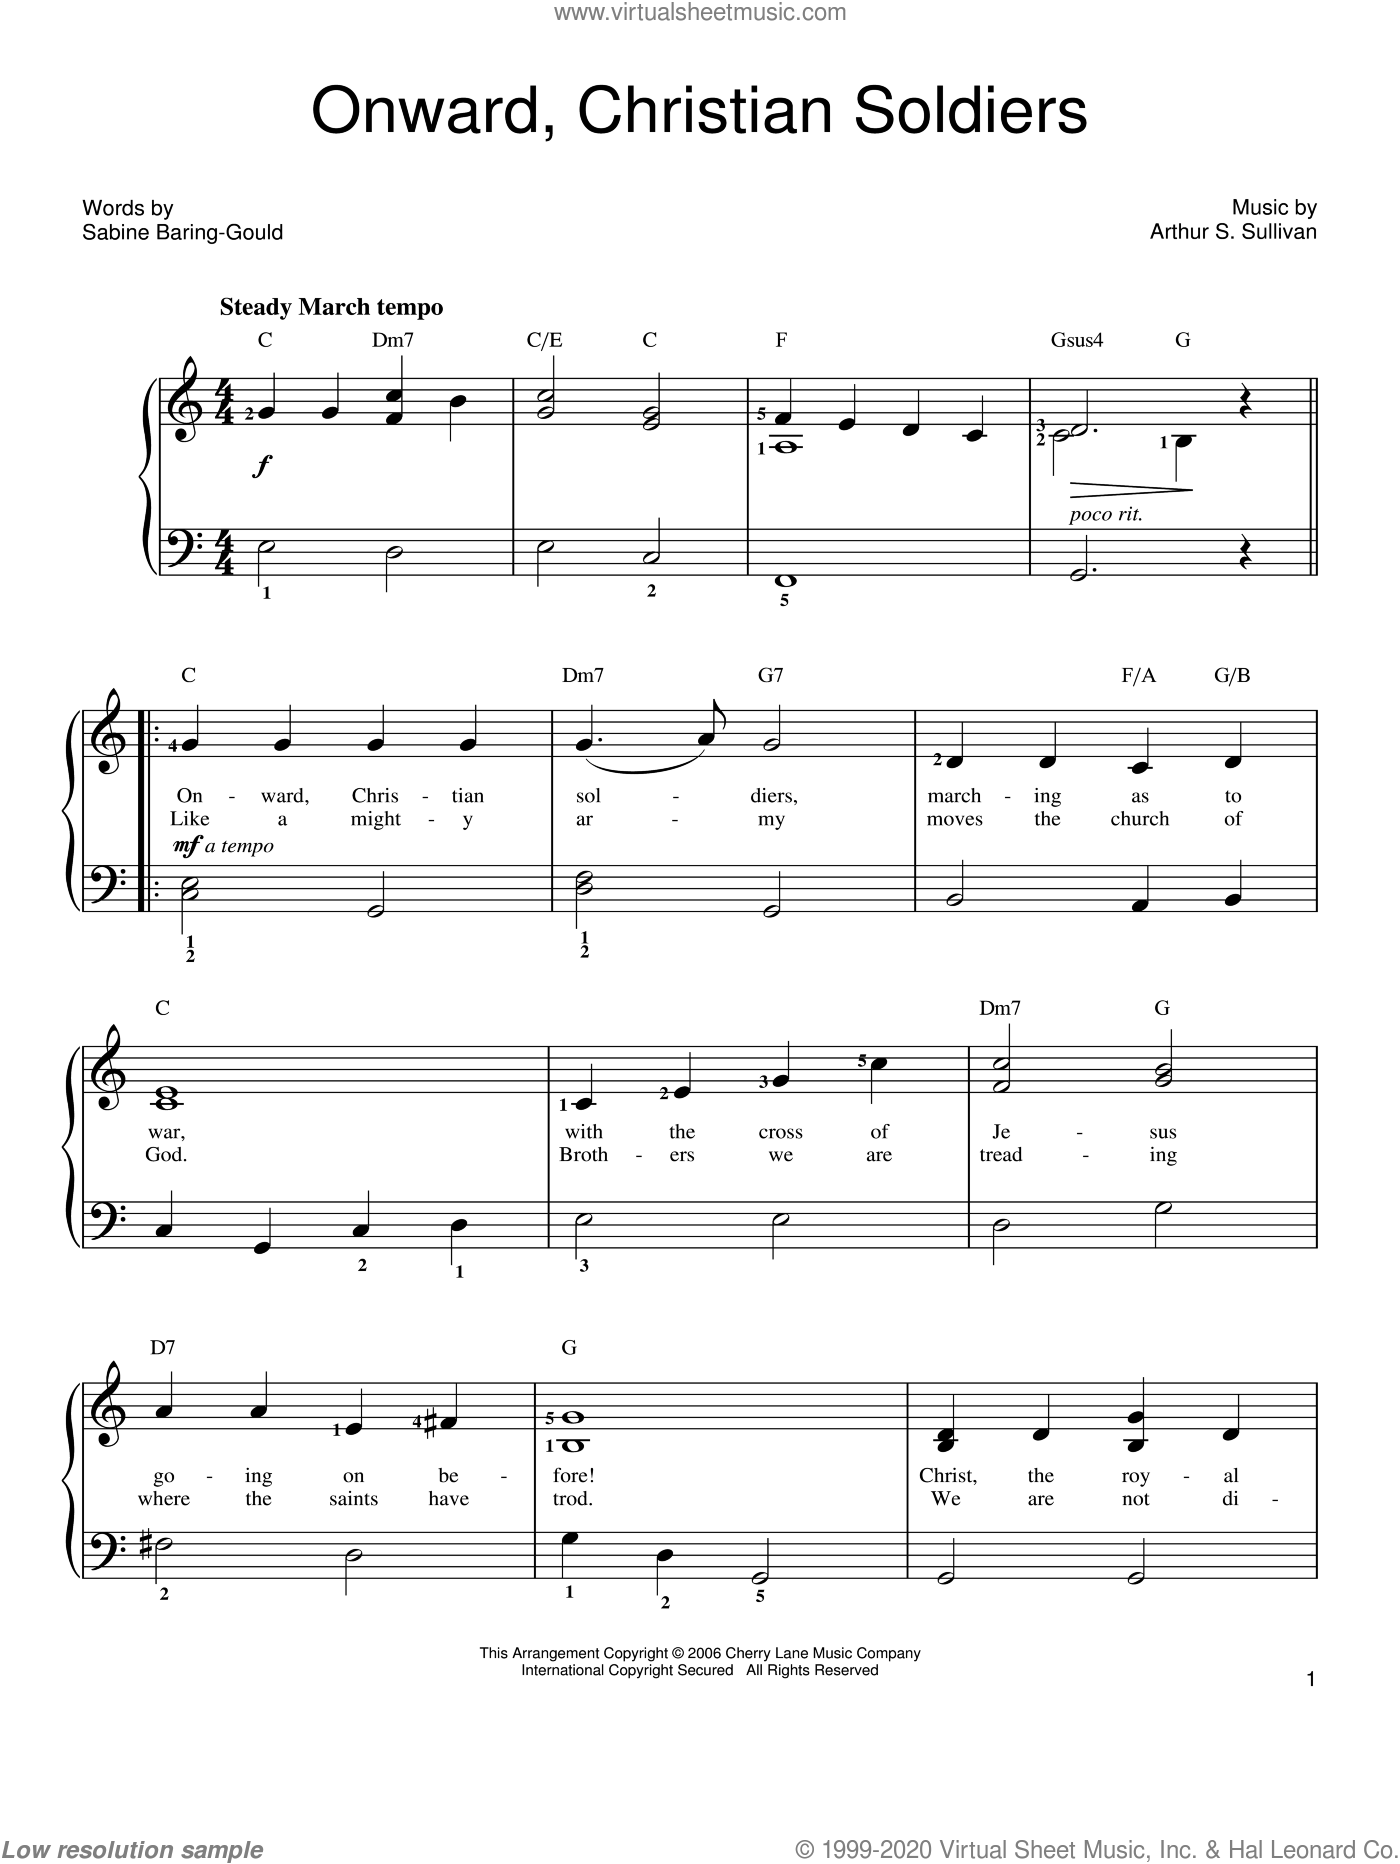 Onward, Christian Soldiers sheet music for piano solo by Sabine Baring-Gould and Arthur Sullivan. Score Image Preview.